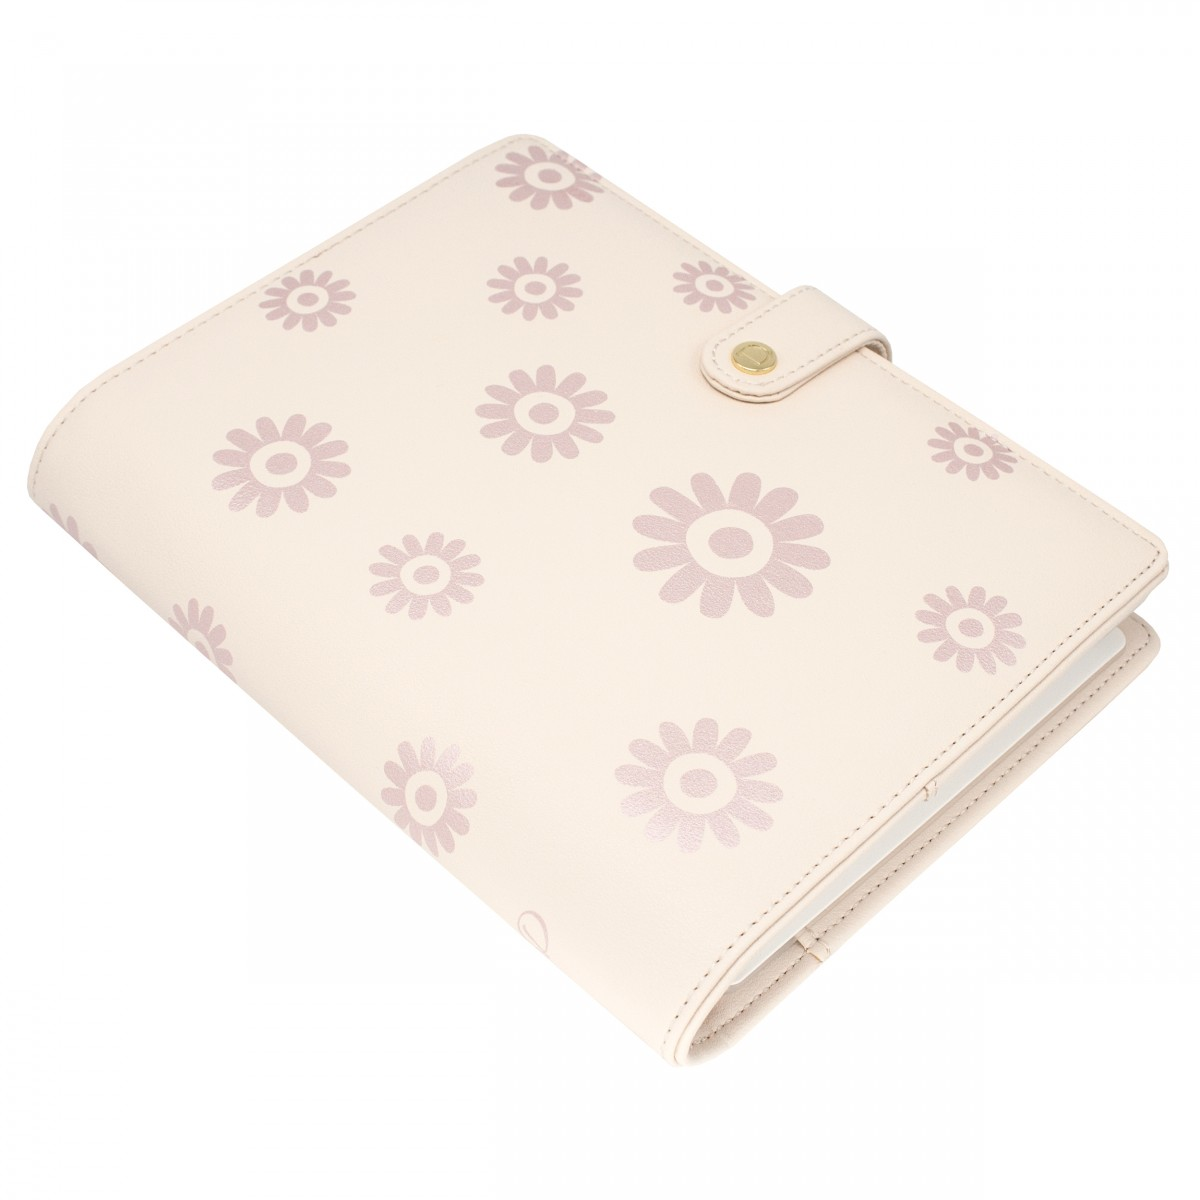 DISCAGENDA BLOSSOMS ROSEGOLD COVER A5 SNAP CLOSURE